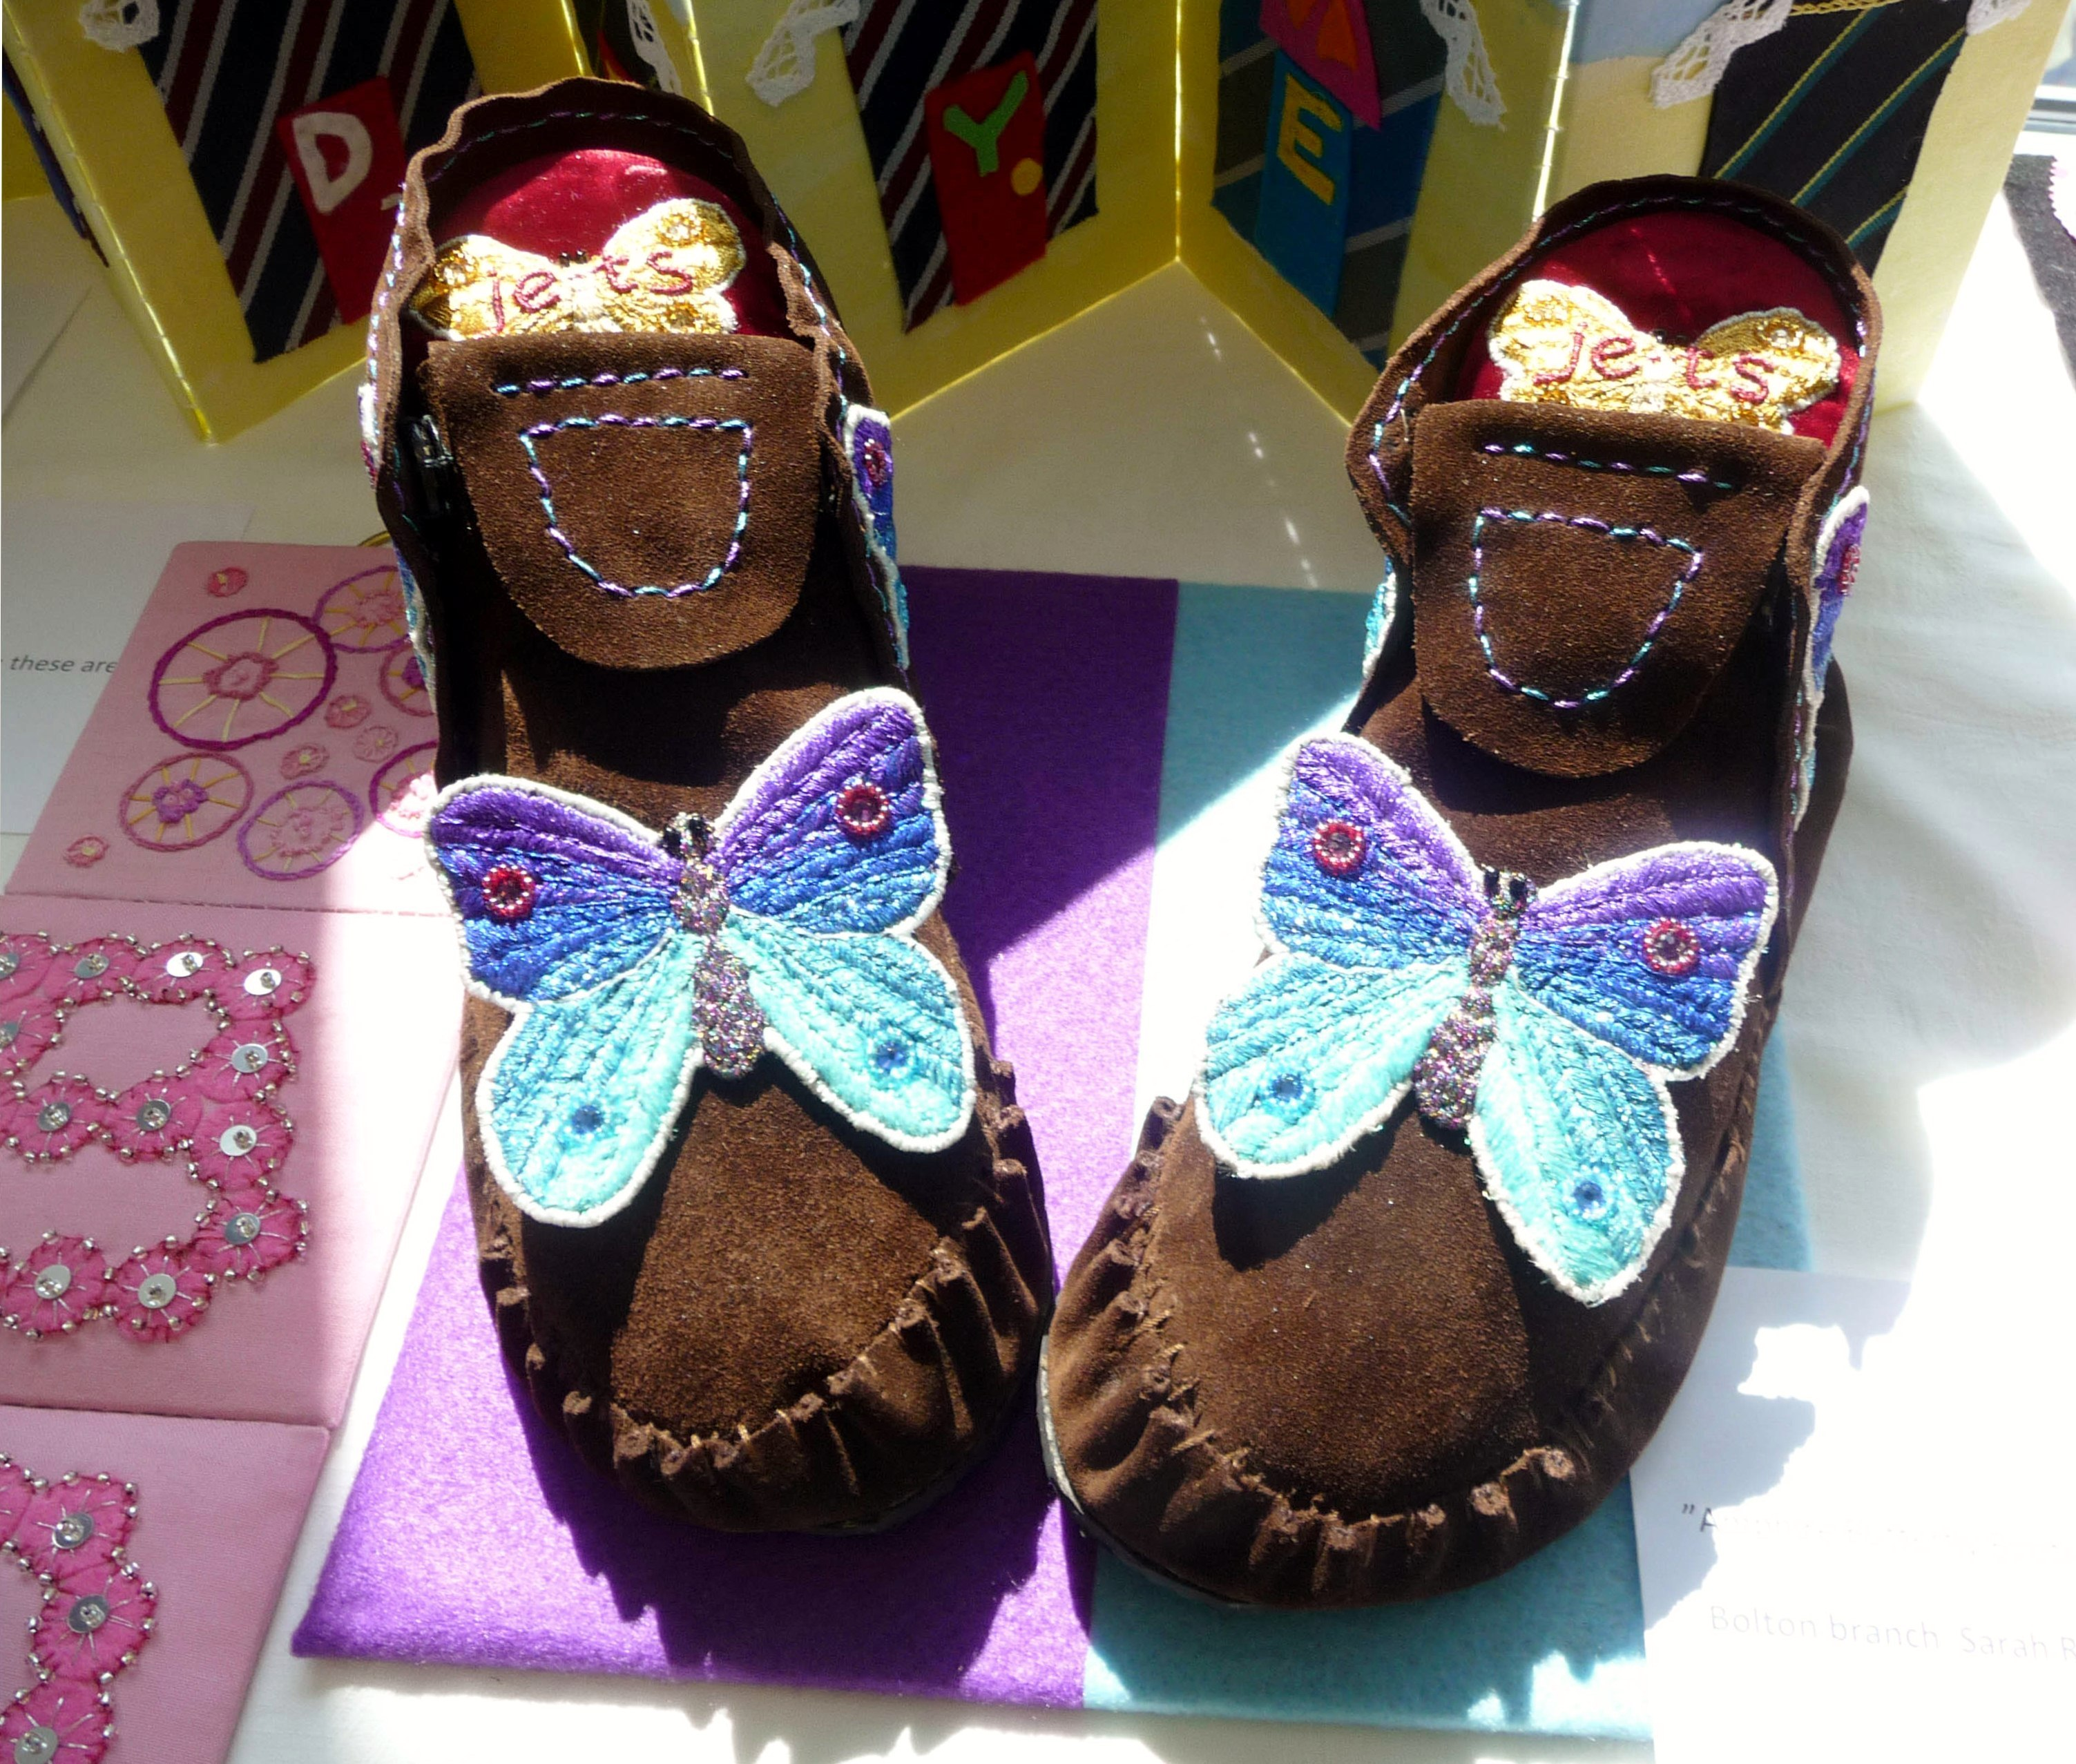 AMPHIRE BUTTERFLY BOOTS by Sarah Ruaux, Bolton YE